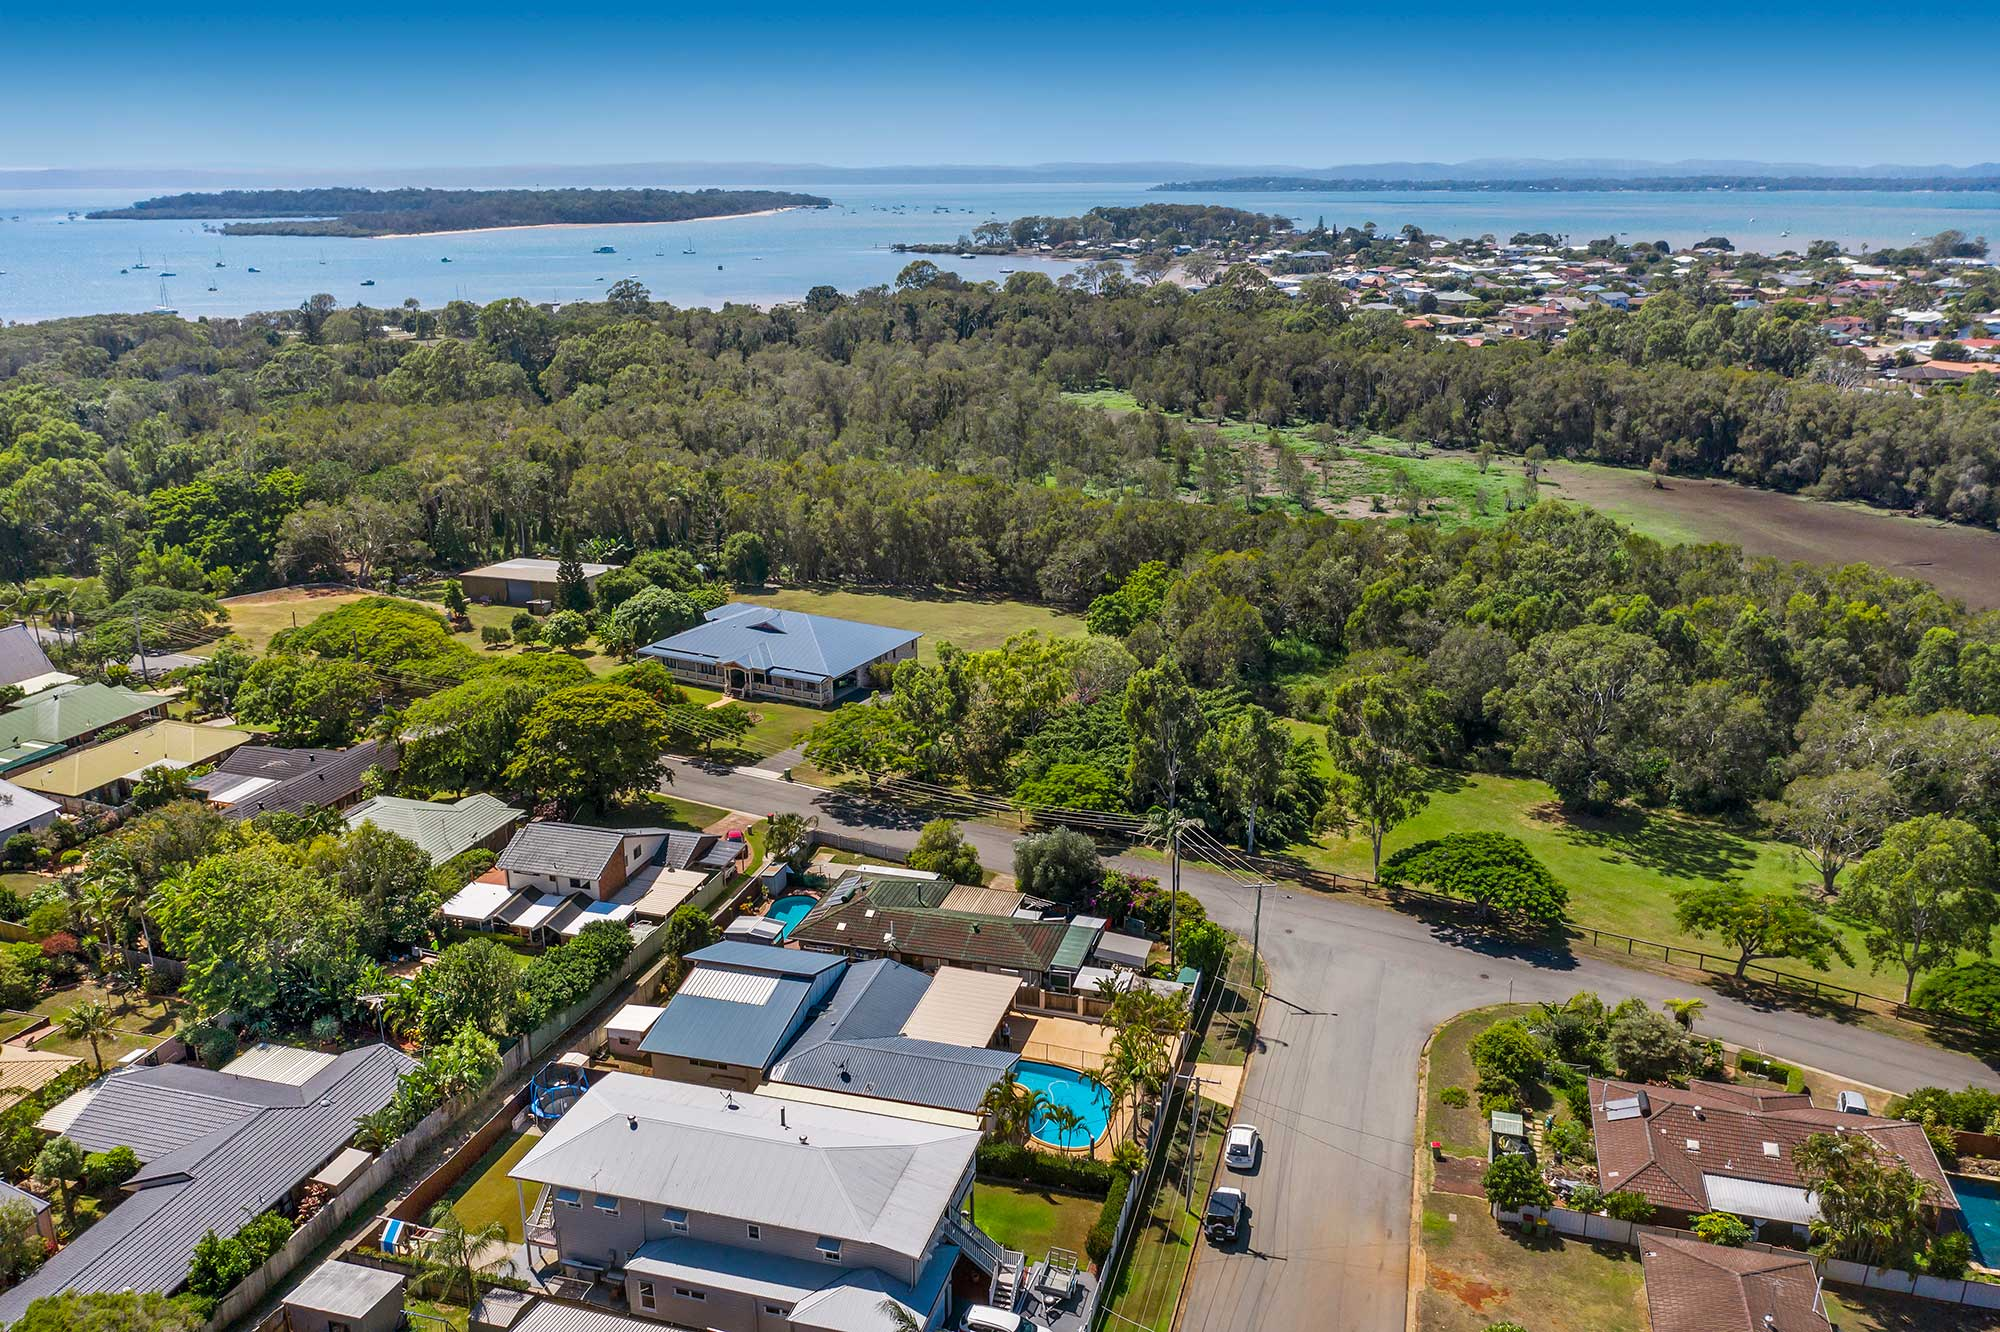 Drone photography of home for sale at Victoria Point highlighting proximity to Morton Bay